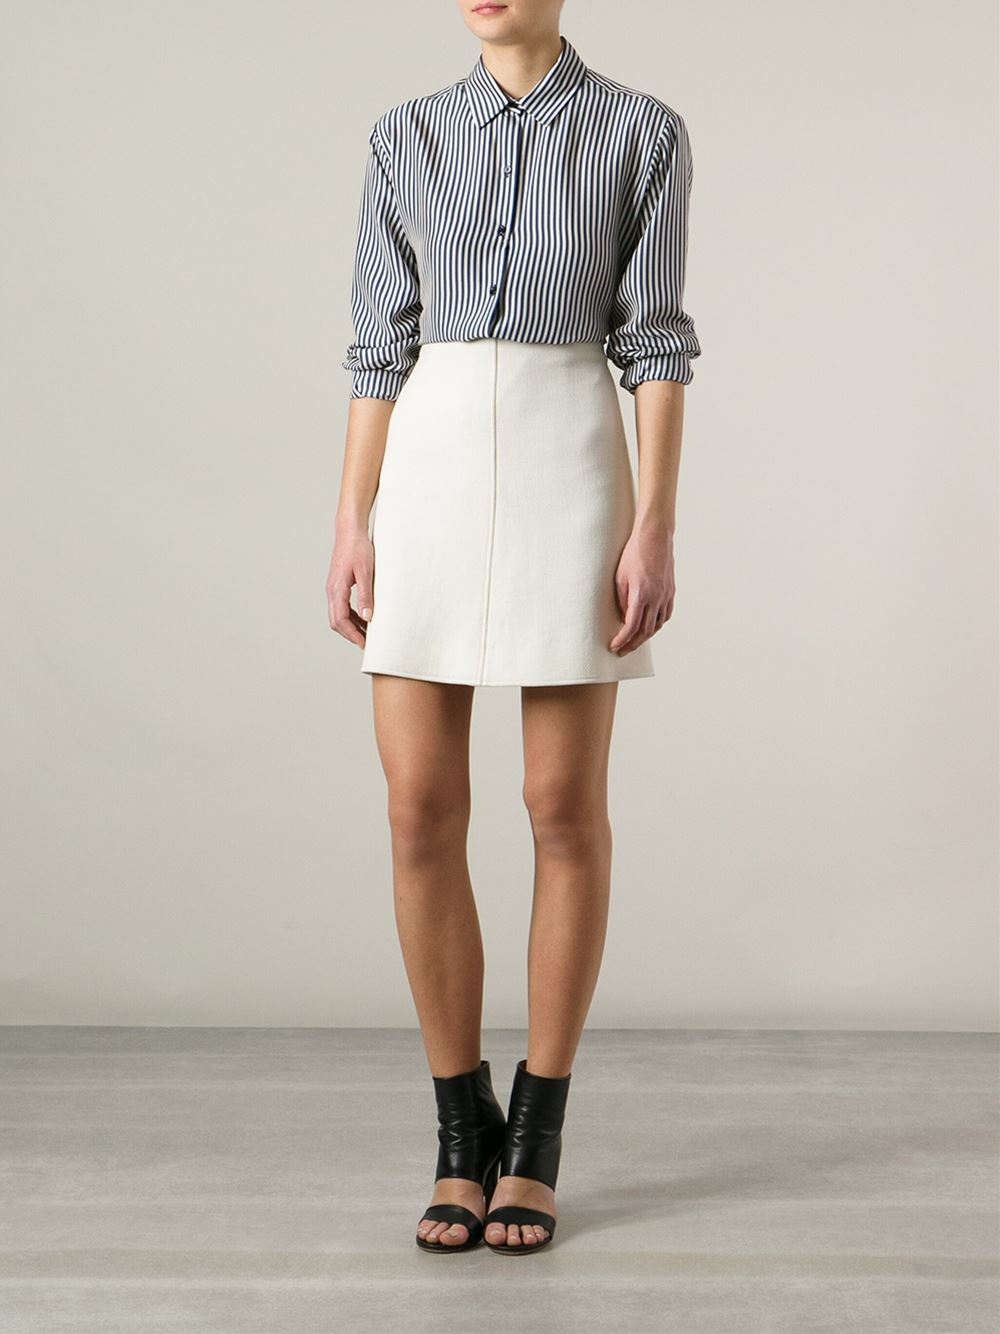 Weekend By Max Mara 'anta' Shirt - The Edituer - Farfetch.com